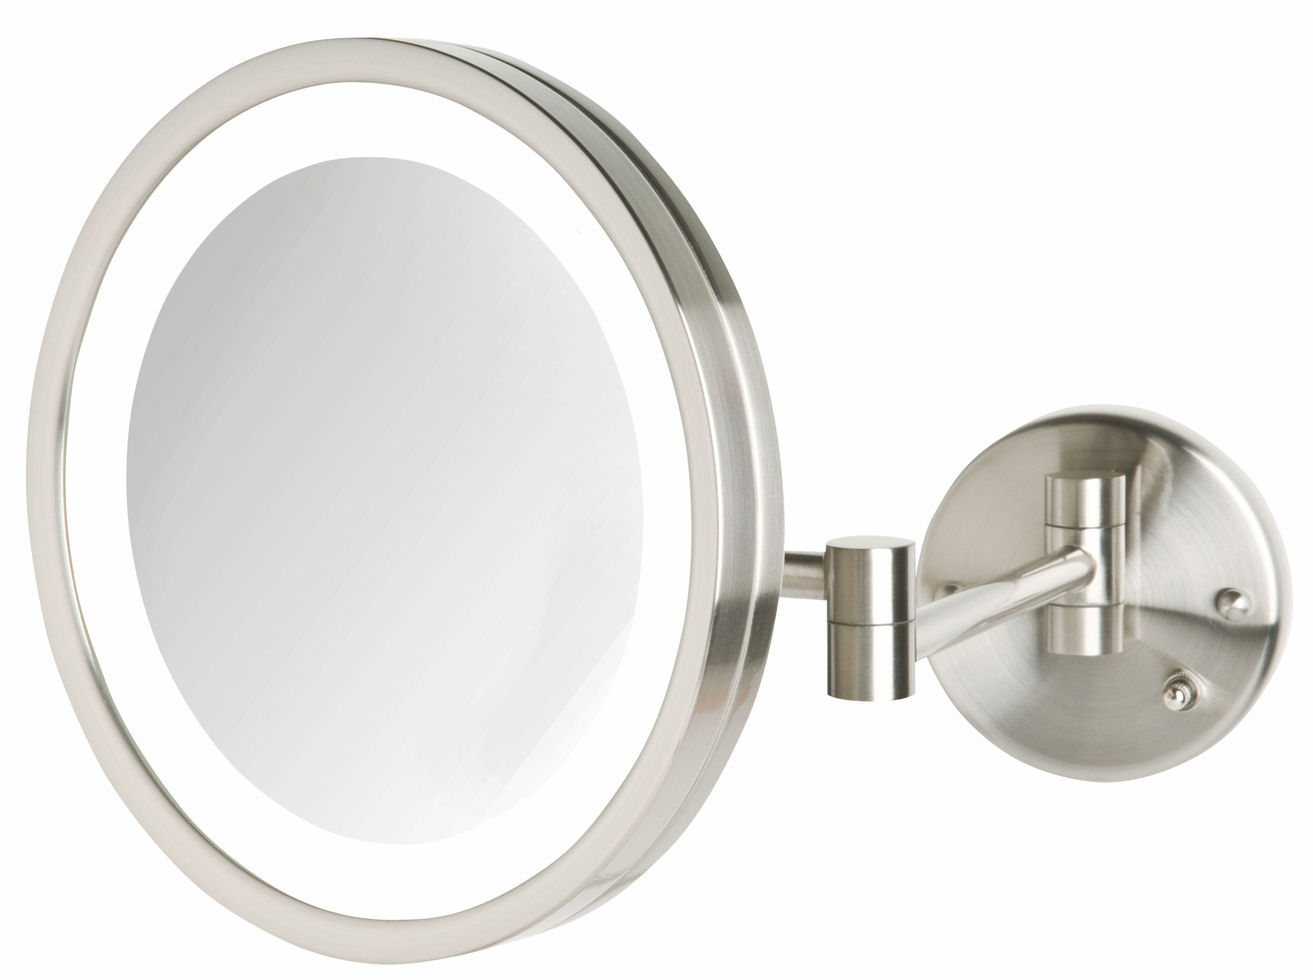 Wall Mounted Lighted Magnifying Mirror Chrome